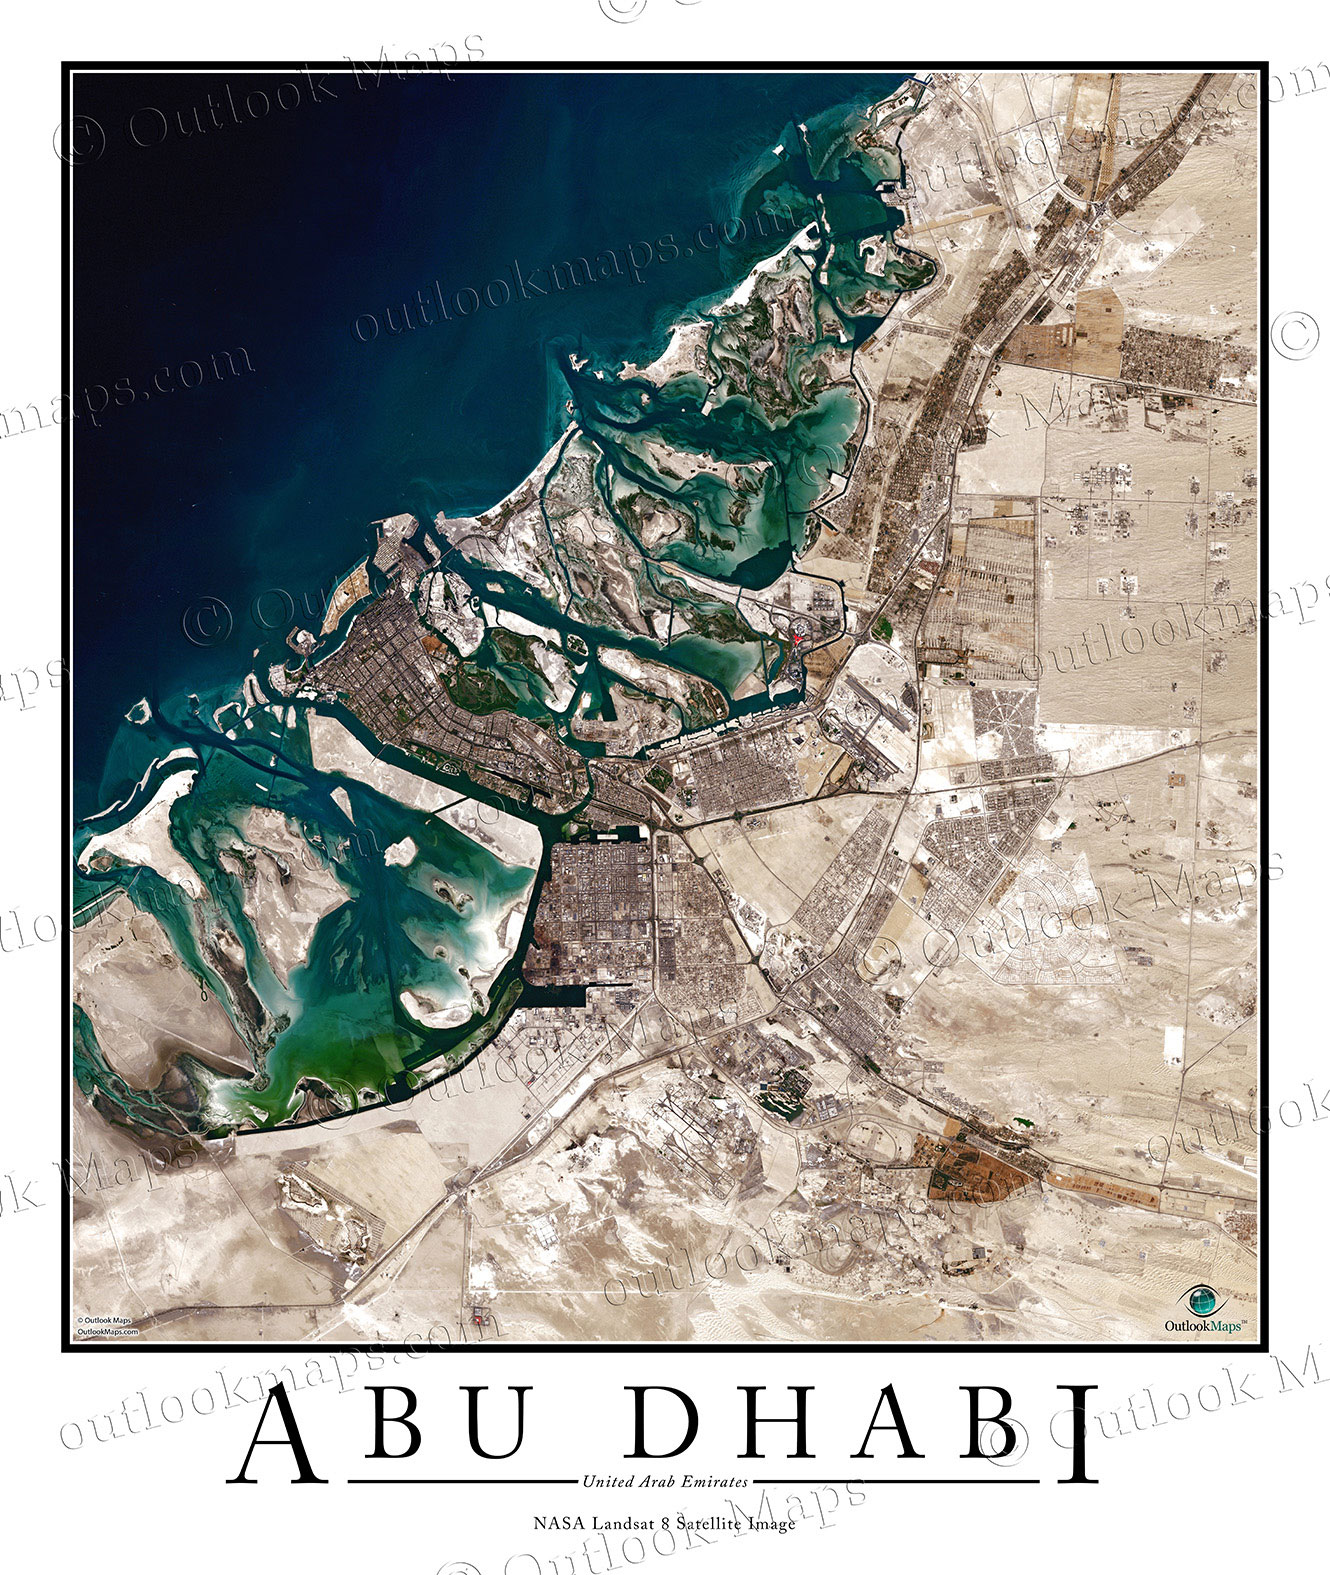 world wall maps framed with Abu Dhabi Satellite Map on Chippewa Flowage Enhanced Wall Map Copy further Animals Of The World Cm 74 Mini Poster likewise Mediterranean Argonavtica Greek Mythology Ortelius Map likewise Dublin Street Map furthermore Alien World Waterscape Brian Wallace.